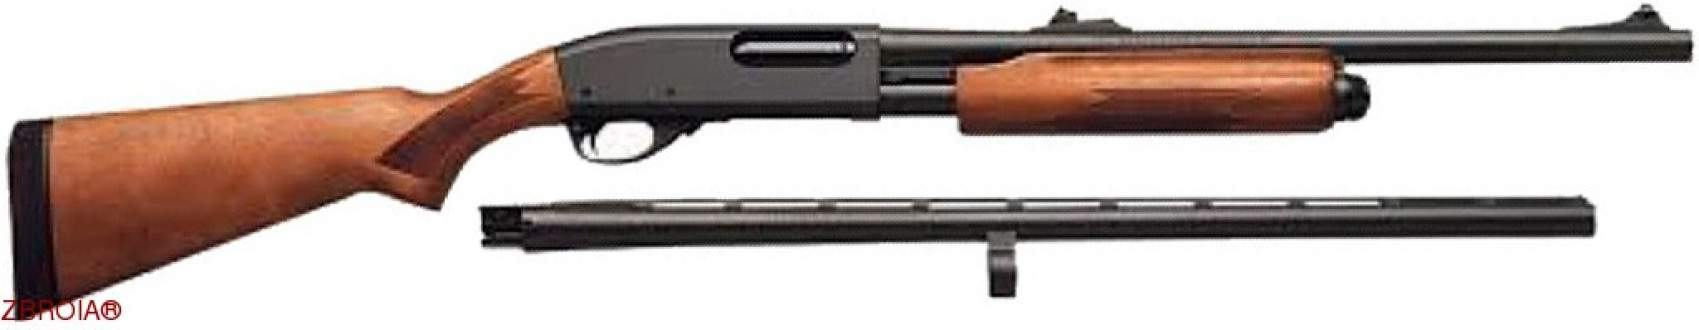 Ружье Remington 870 Express Combo кал. 12/76